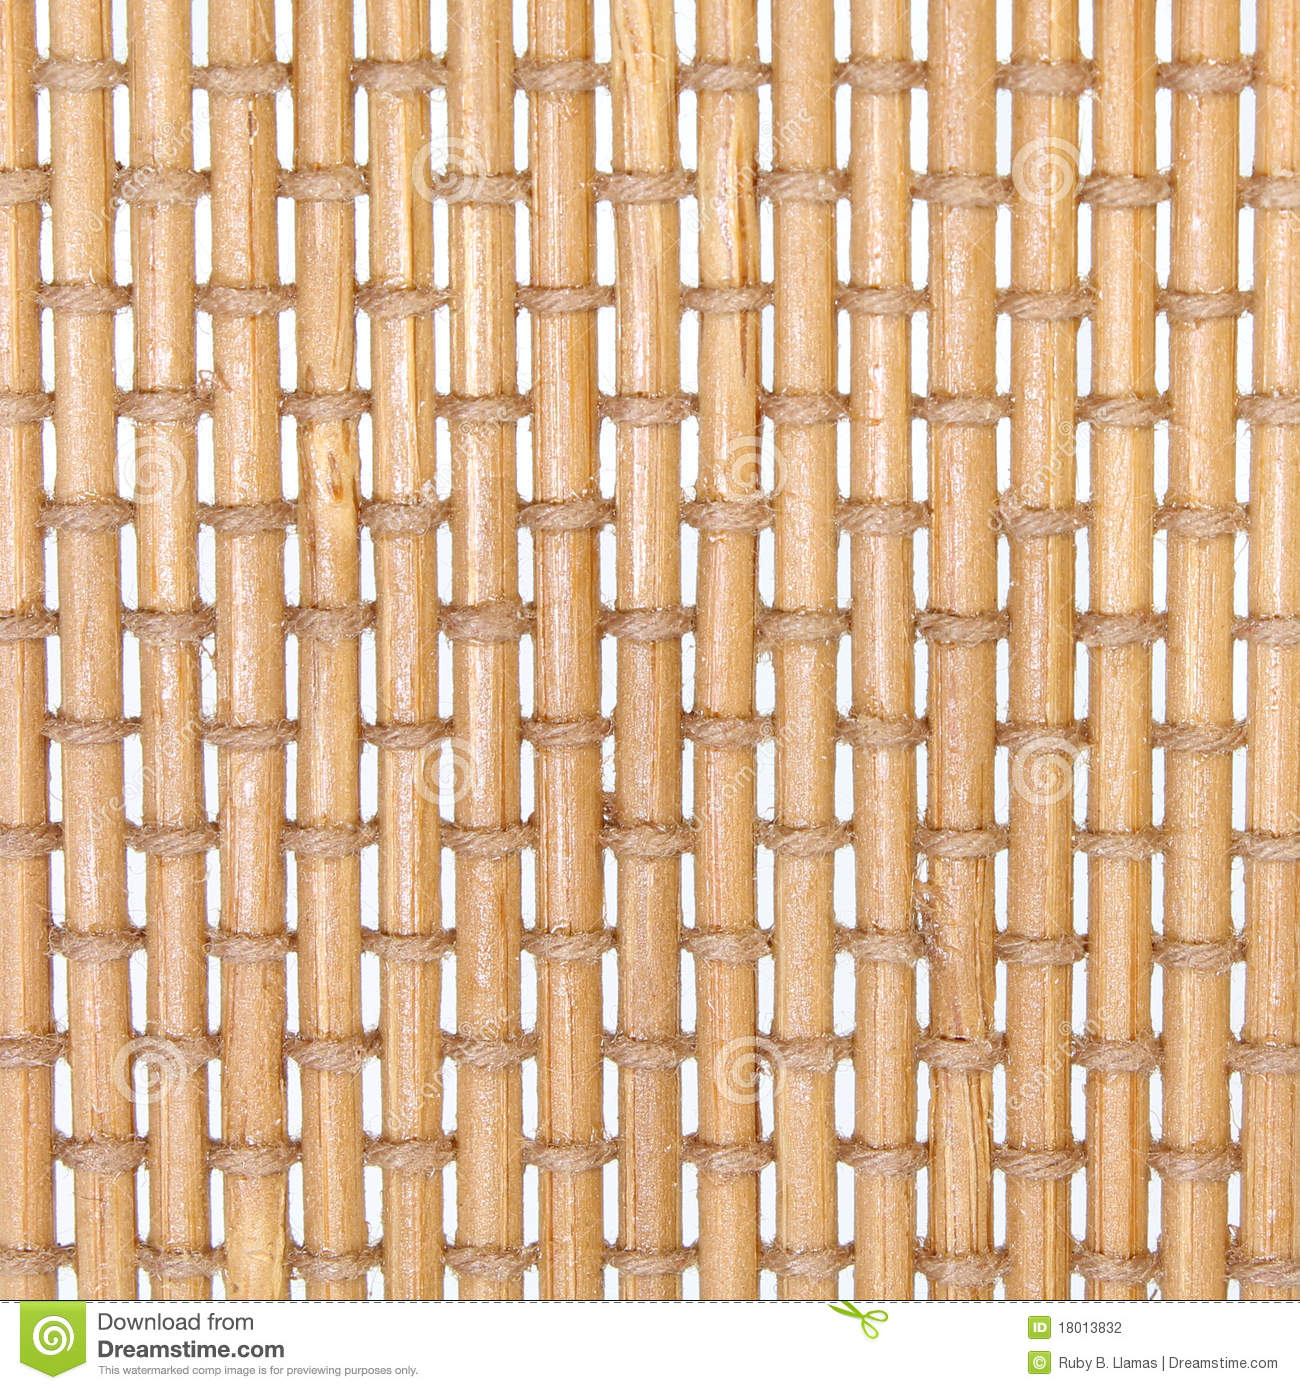 Cane and Twine Weave Background